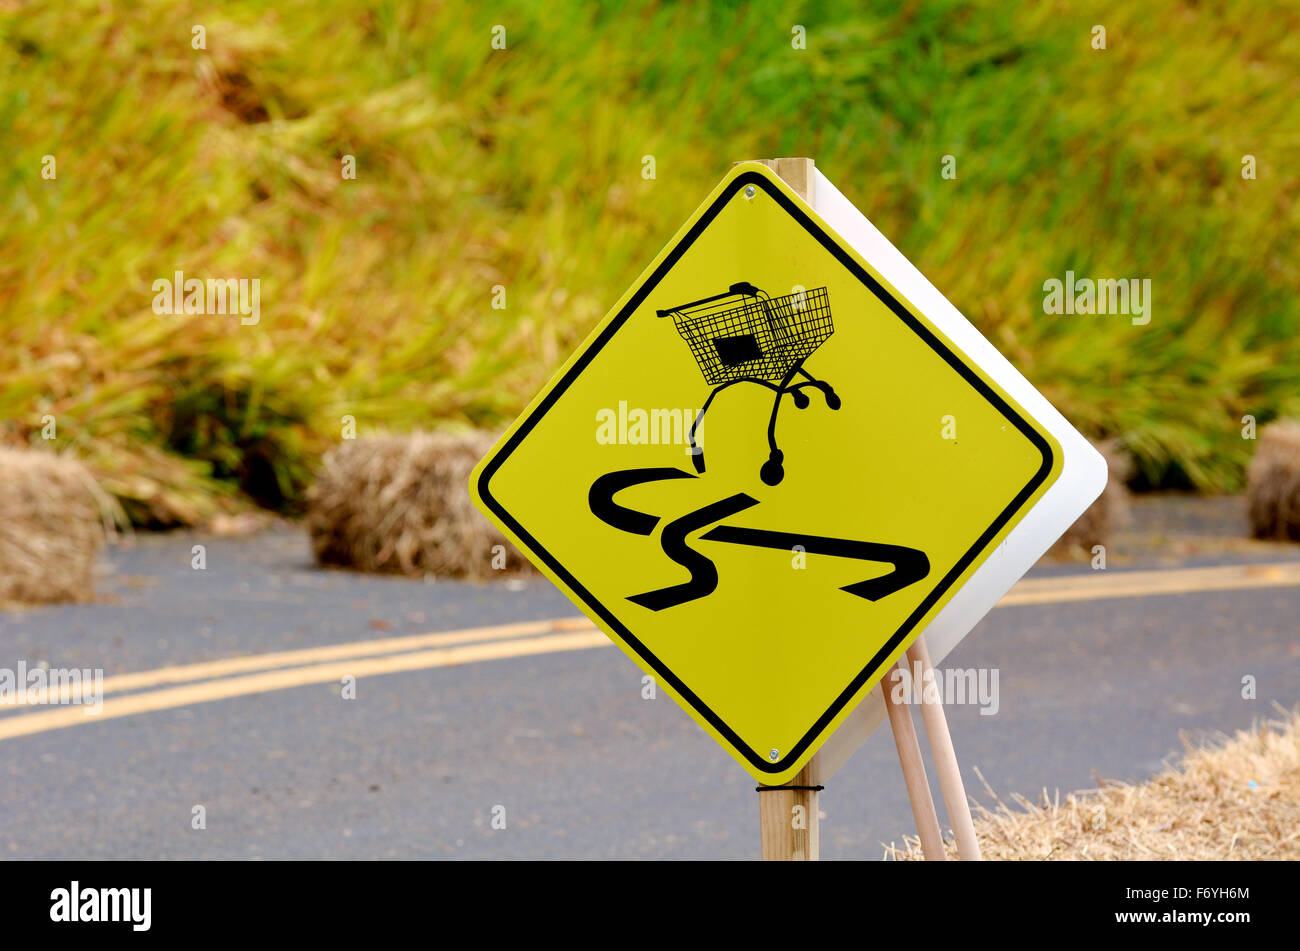 Dangerous slippery road sign of shopping trolley on the roadside.Conceptual concept and ideas background with copy - Stock Image